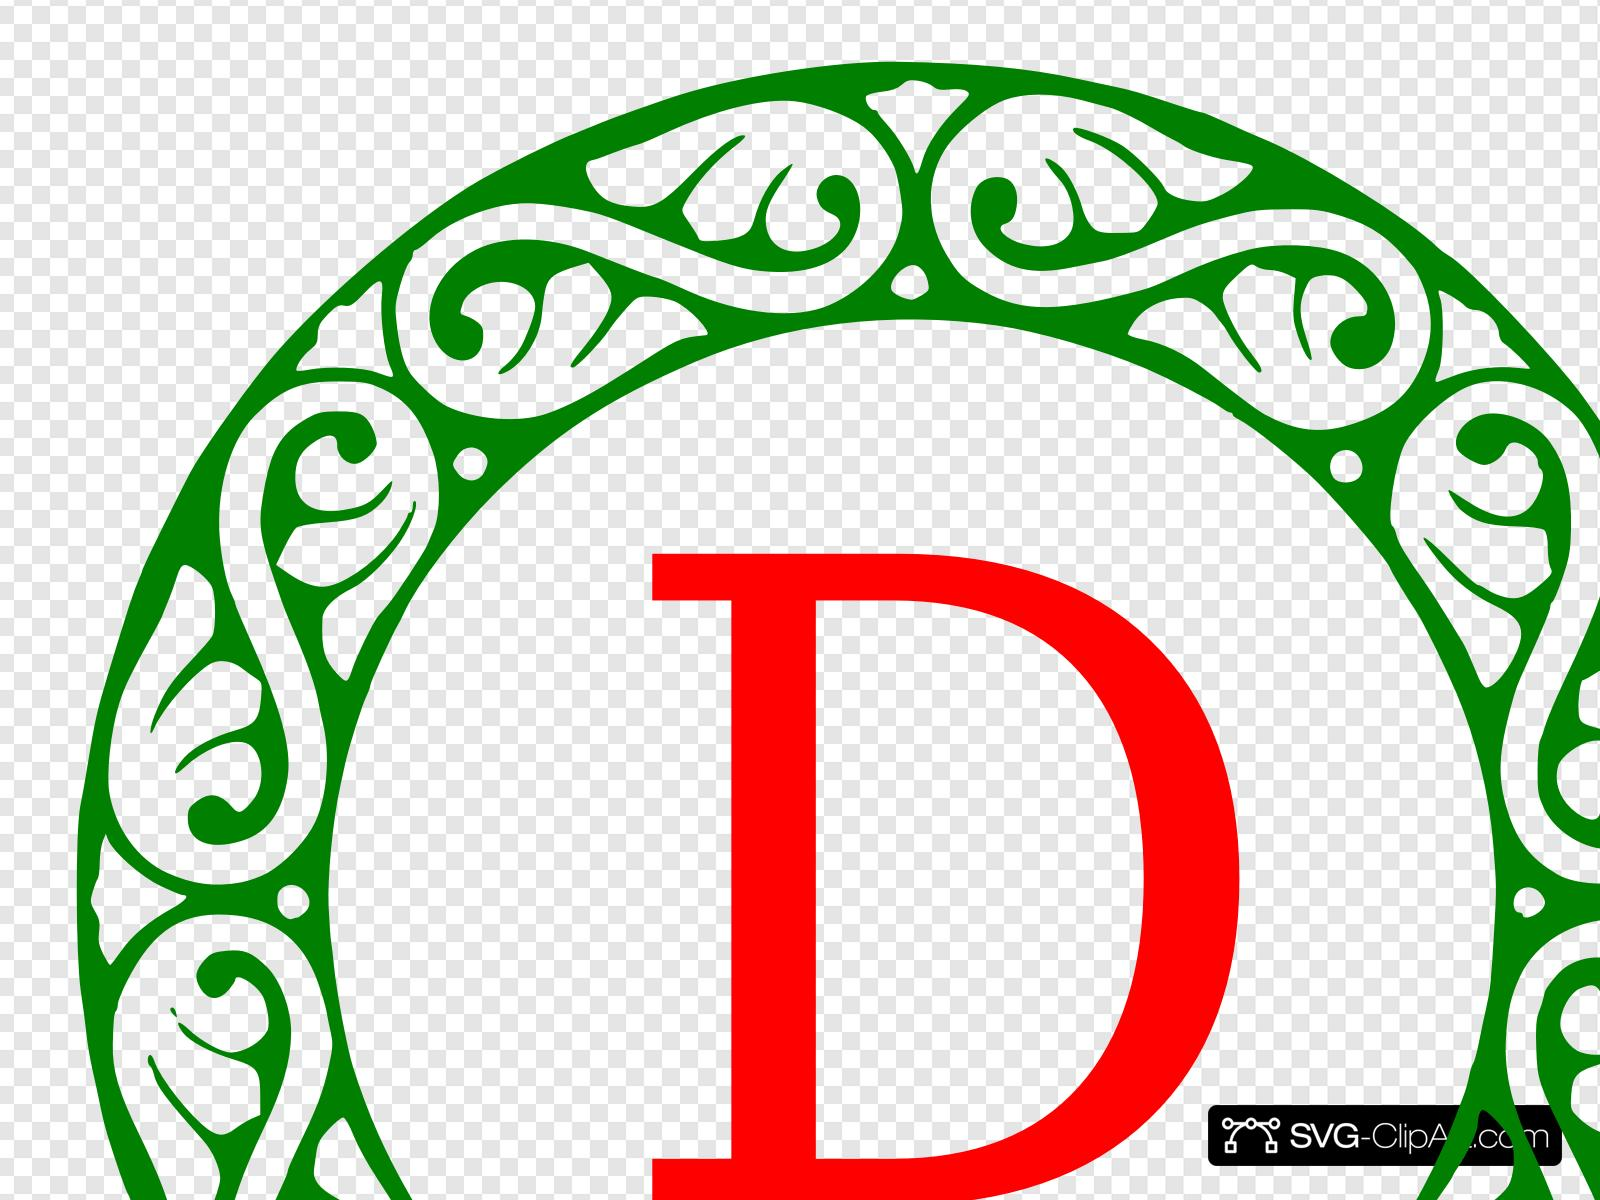 Letter D Christmas Monogram Clip art, Icon and SVG.